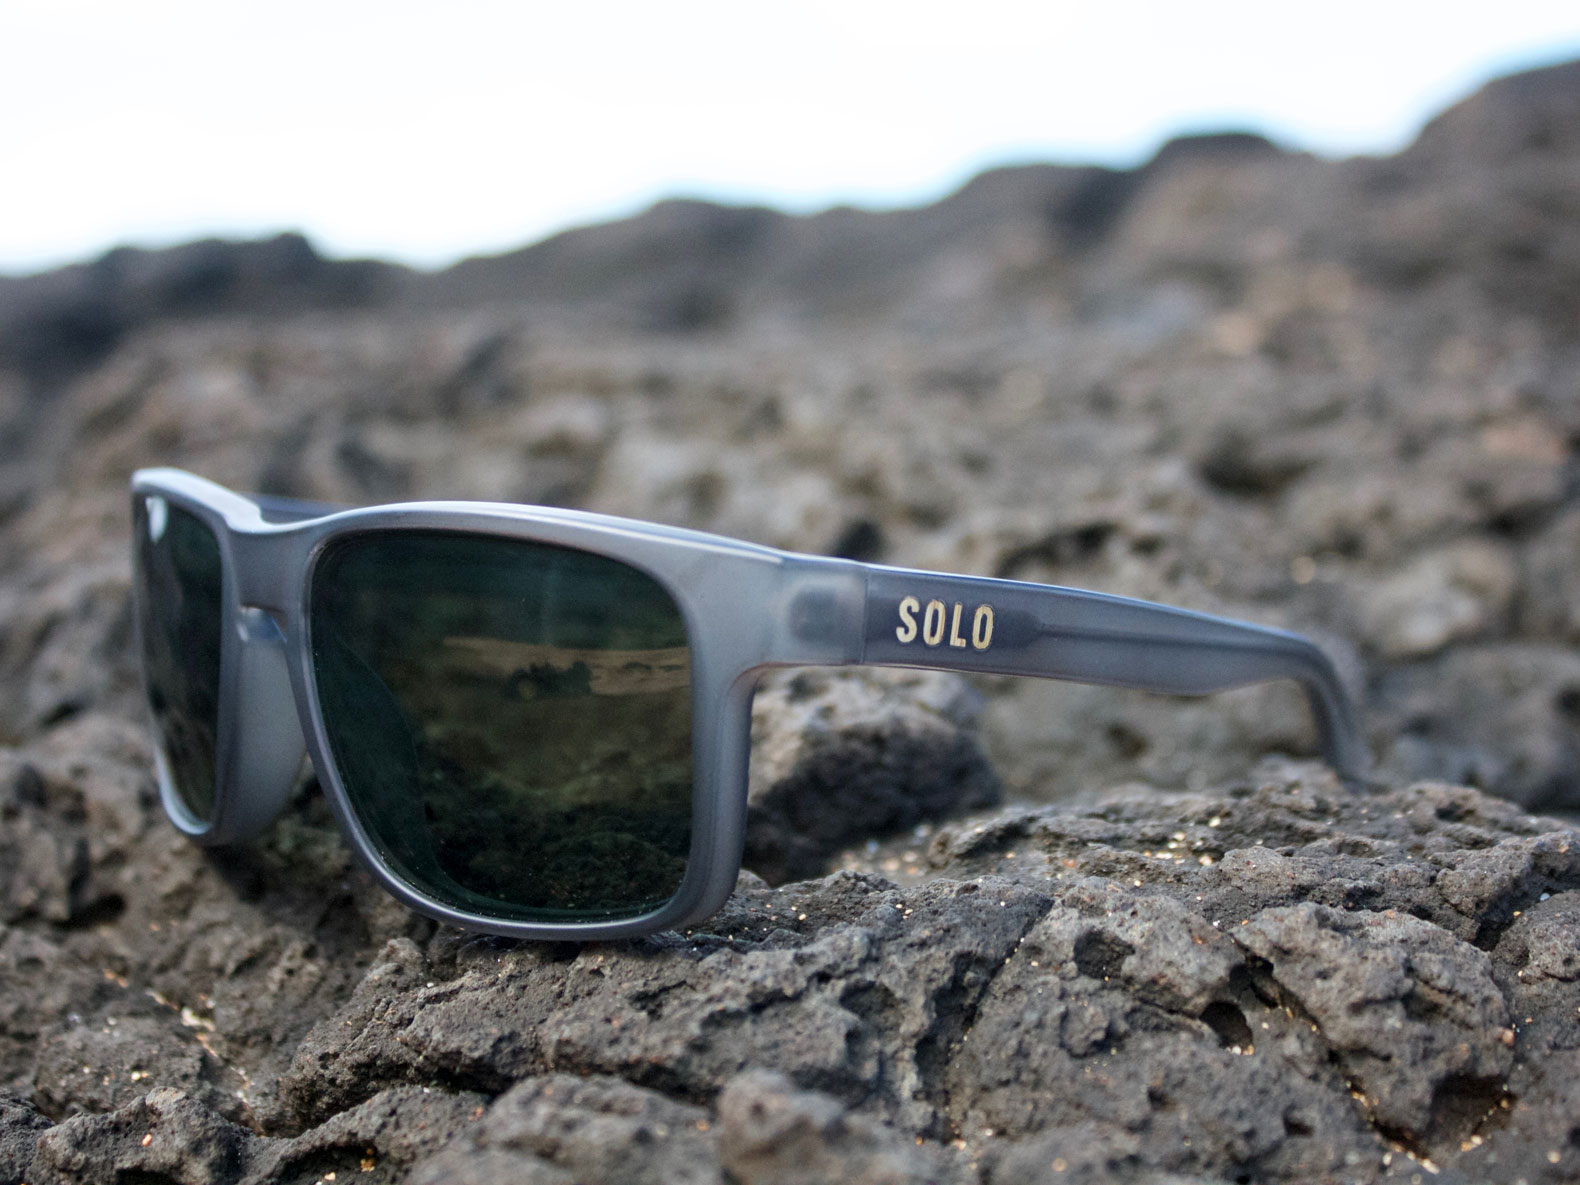 97ac8b72fdd3 Solo Eyewear Makes Sunglasses From Recycled Plastic